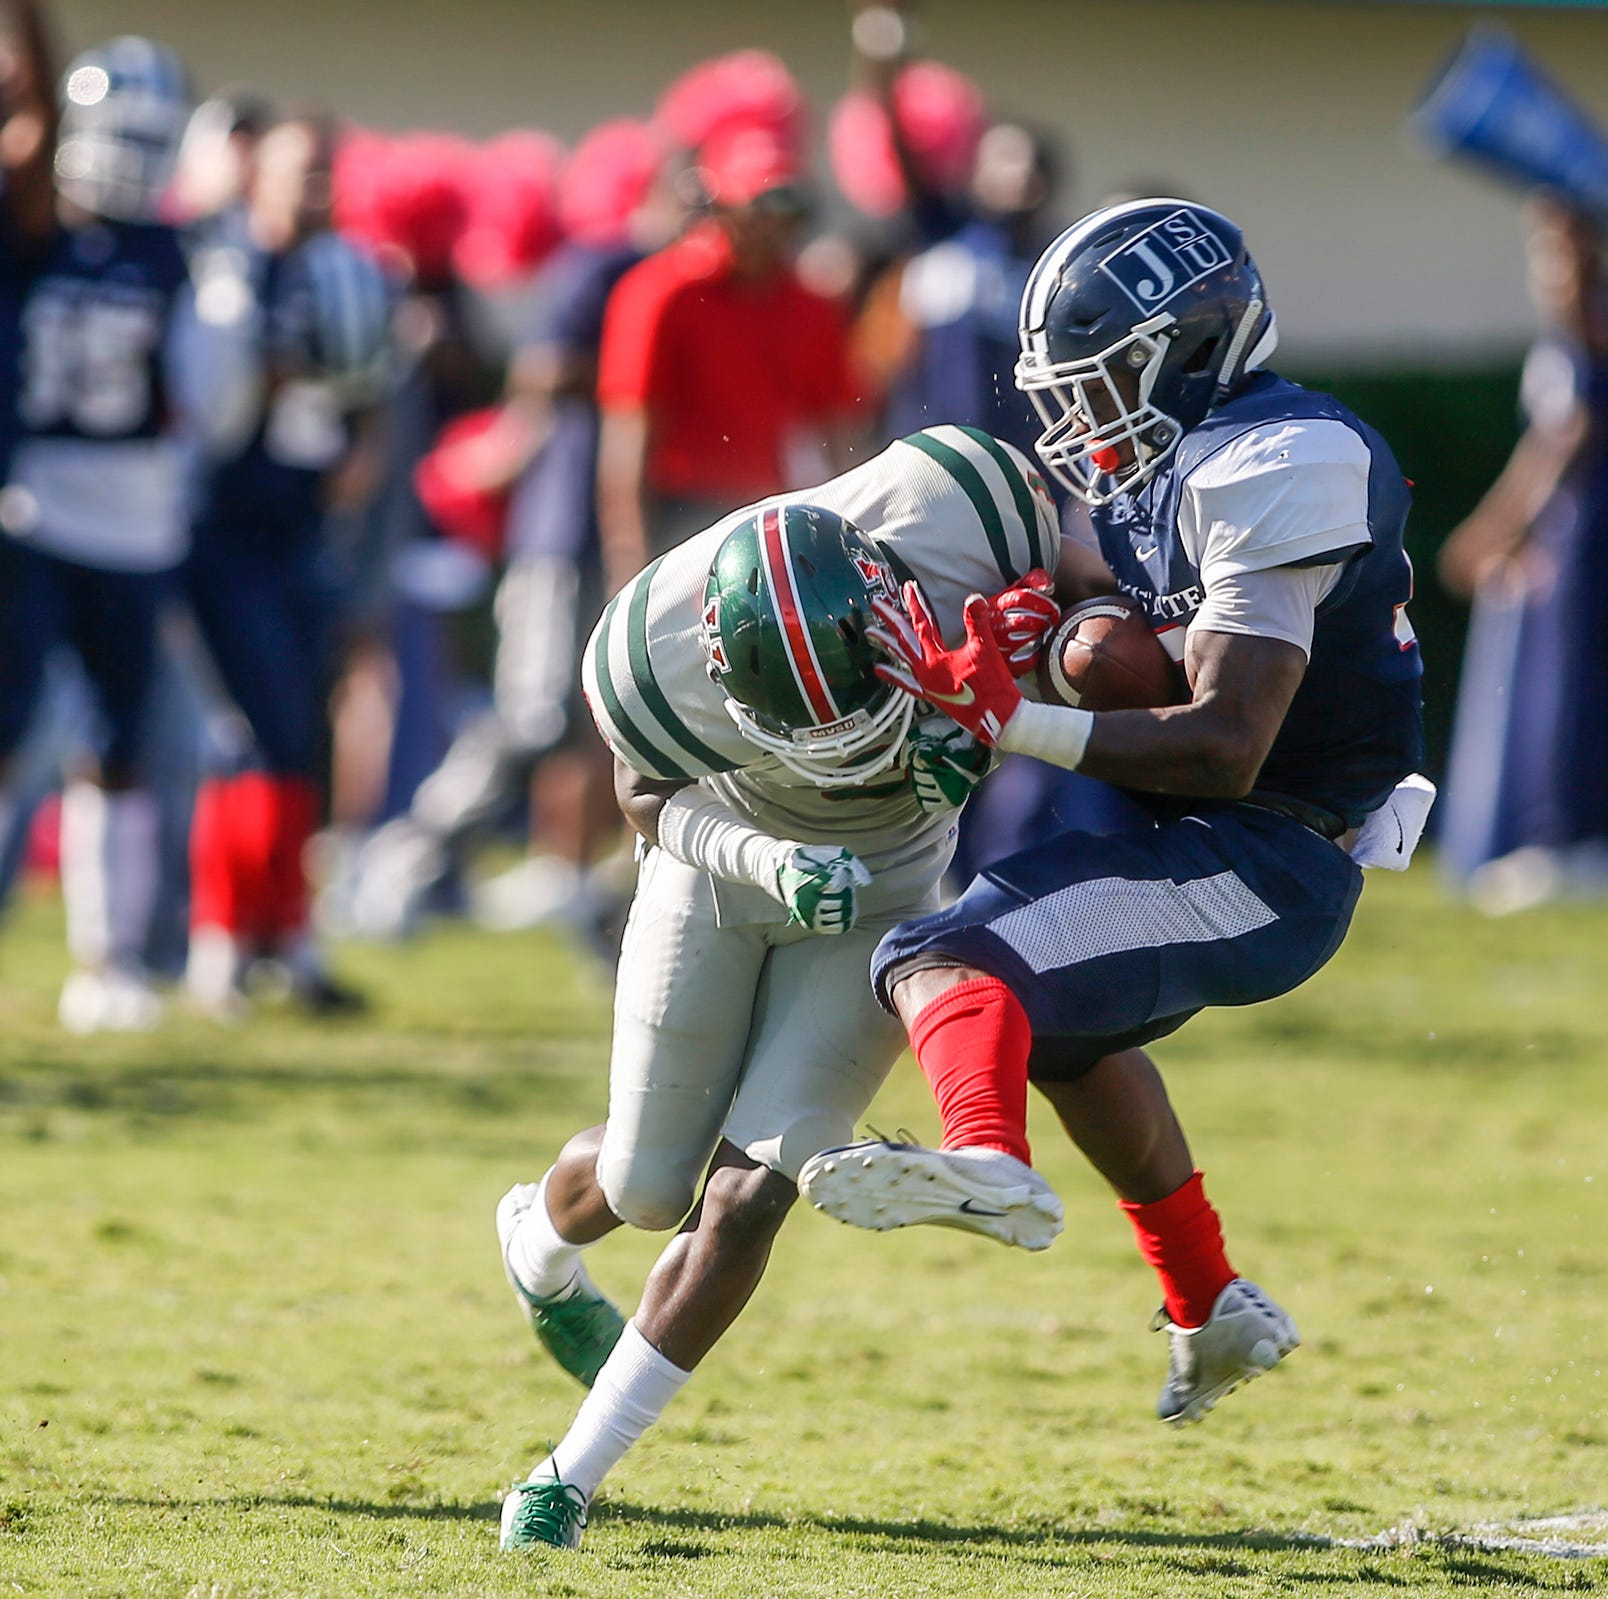 Jackson State grinds out homecoming win over Mississippi Valley State